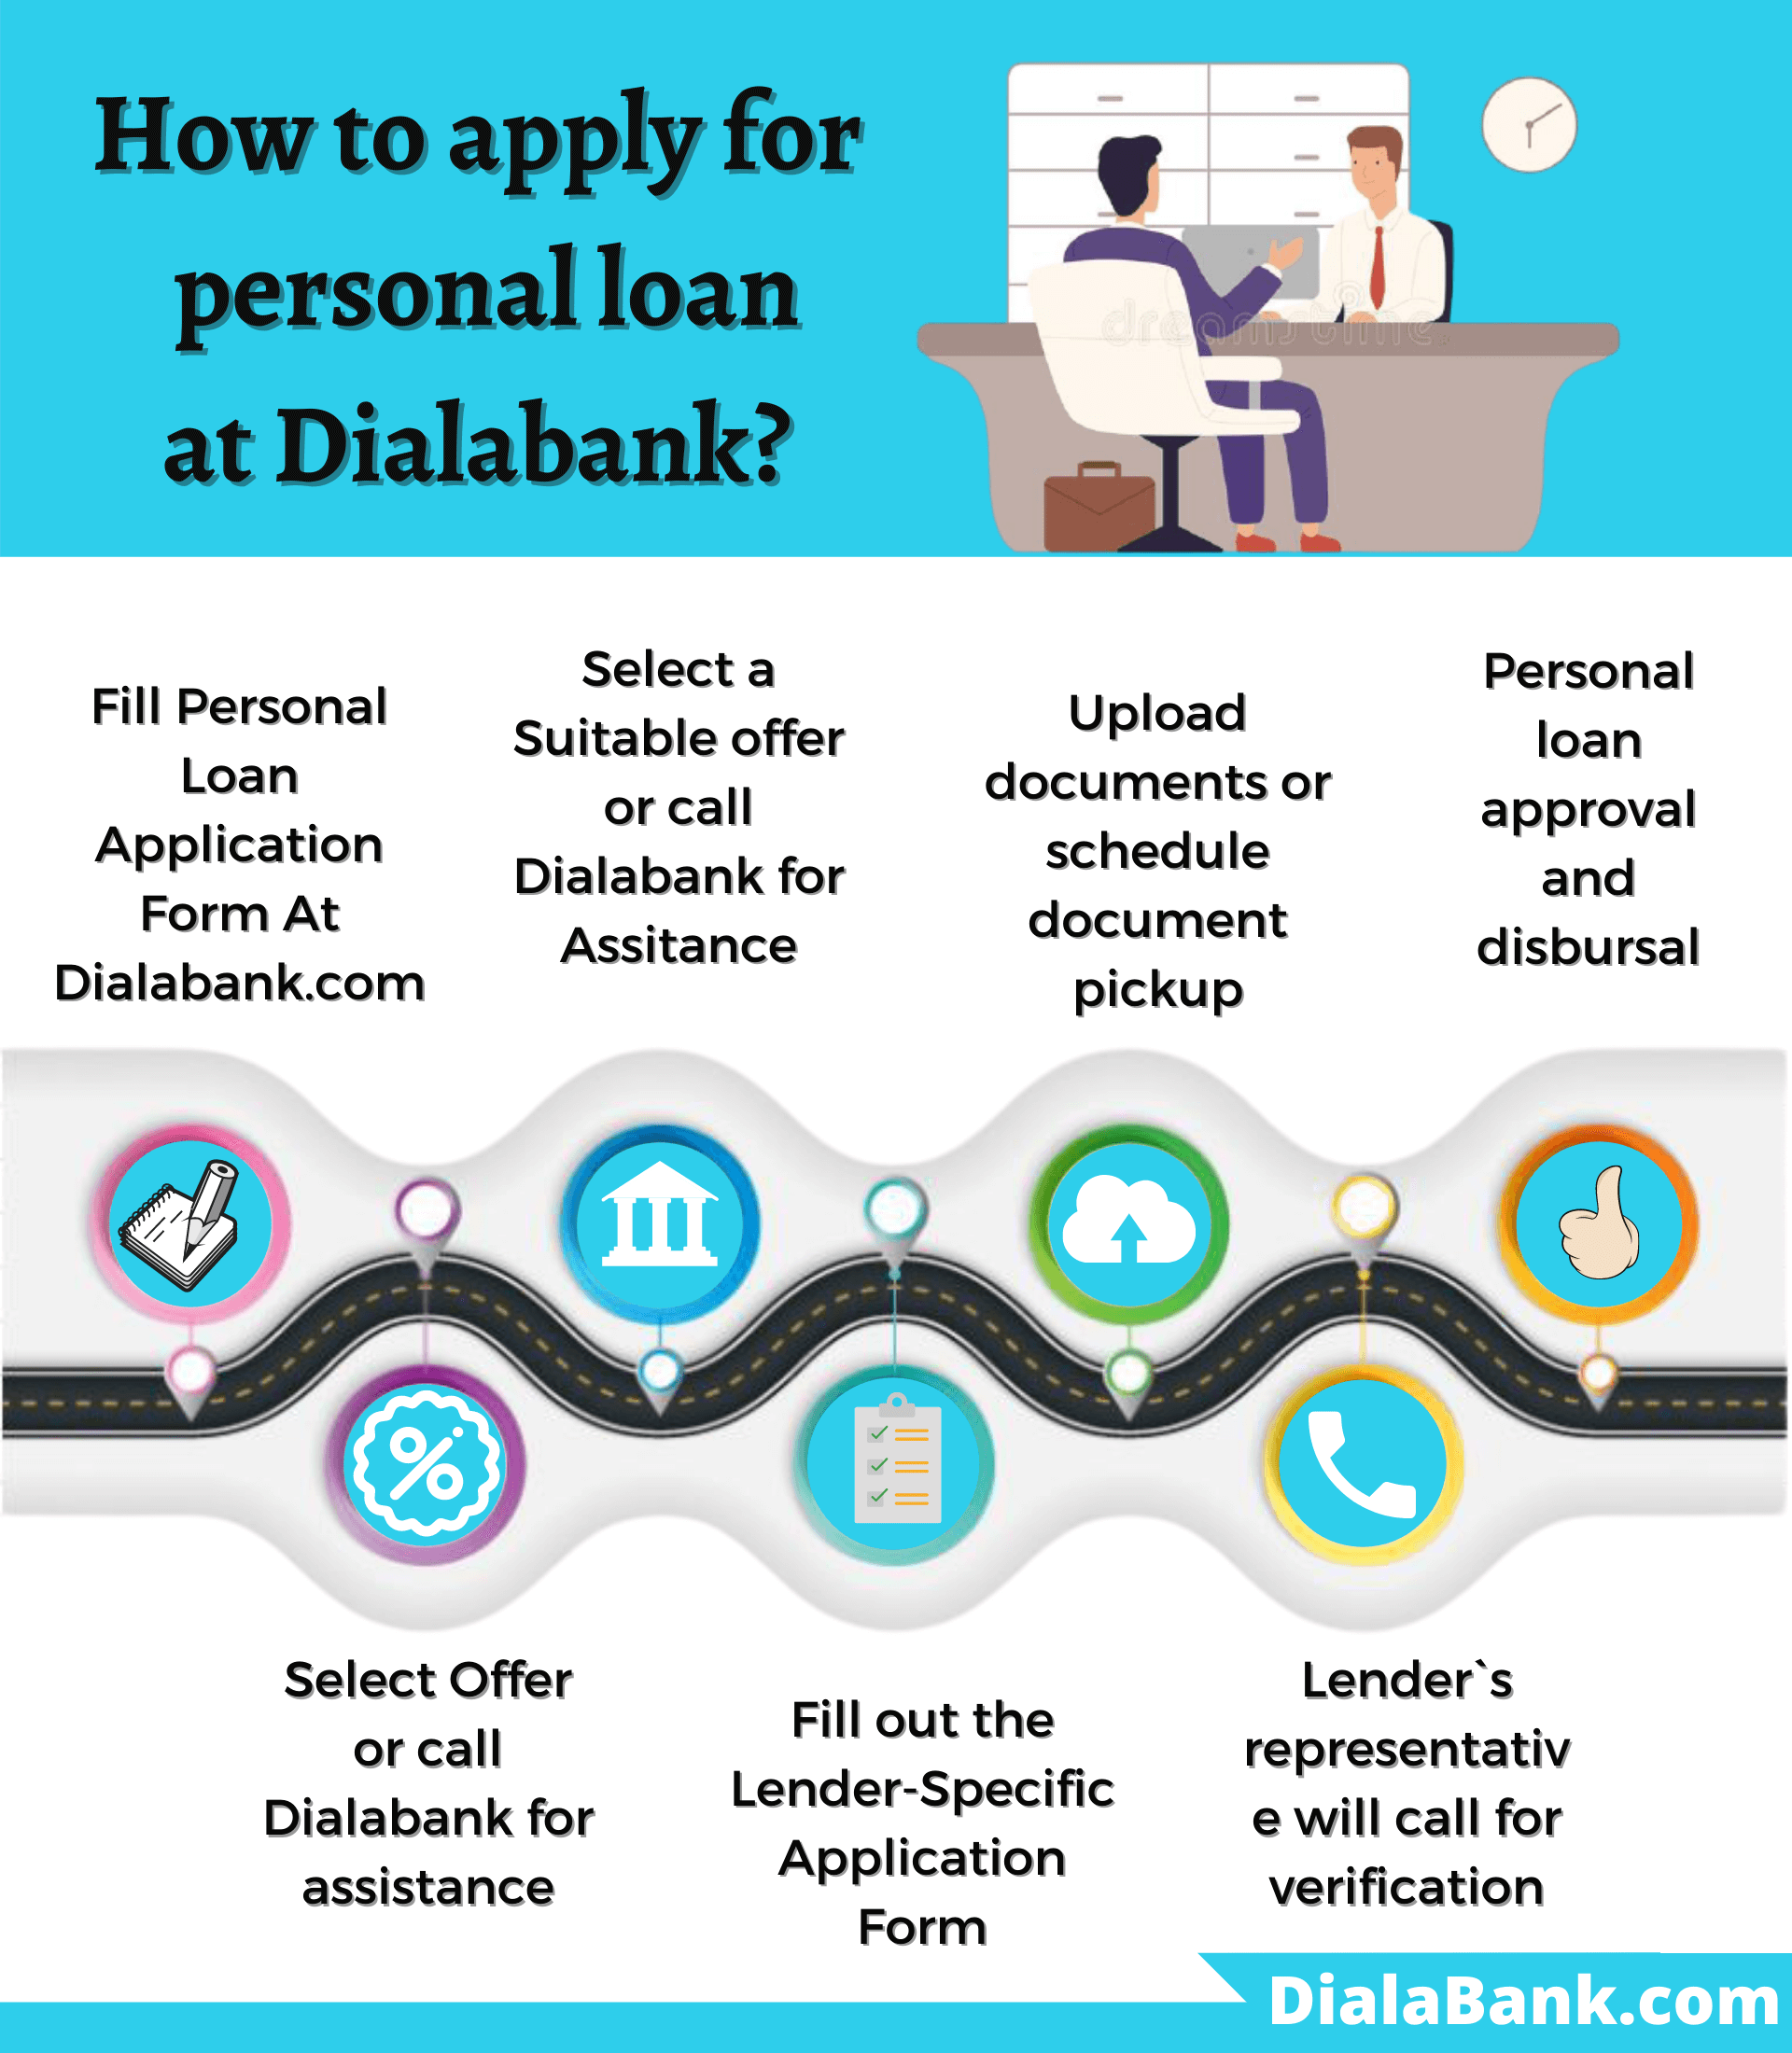 State Bank of Indore Personal Loan